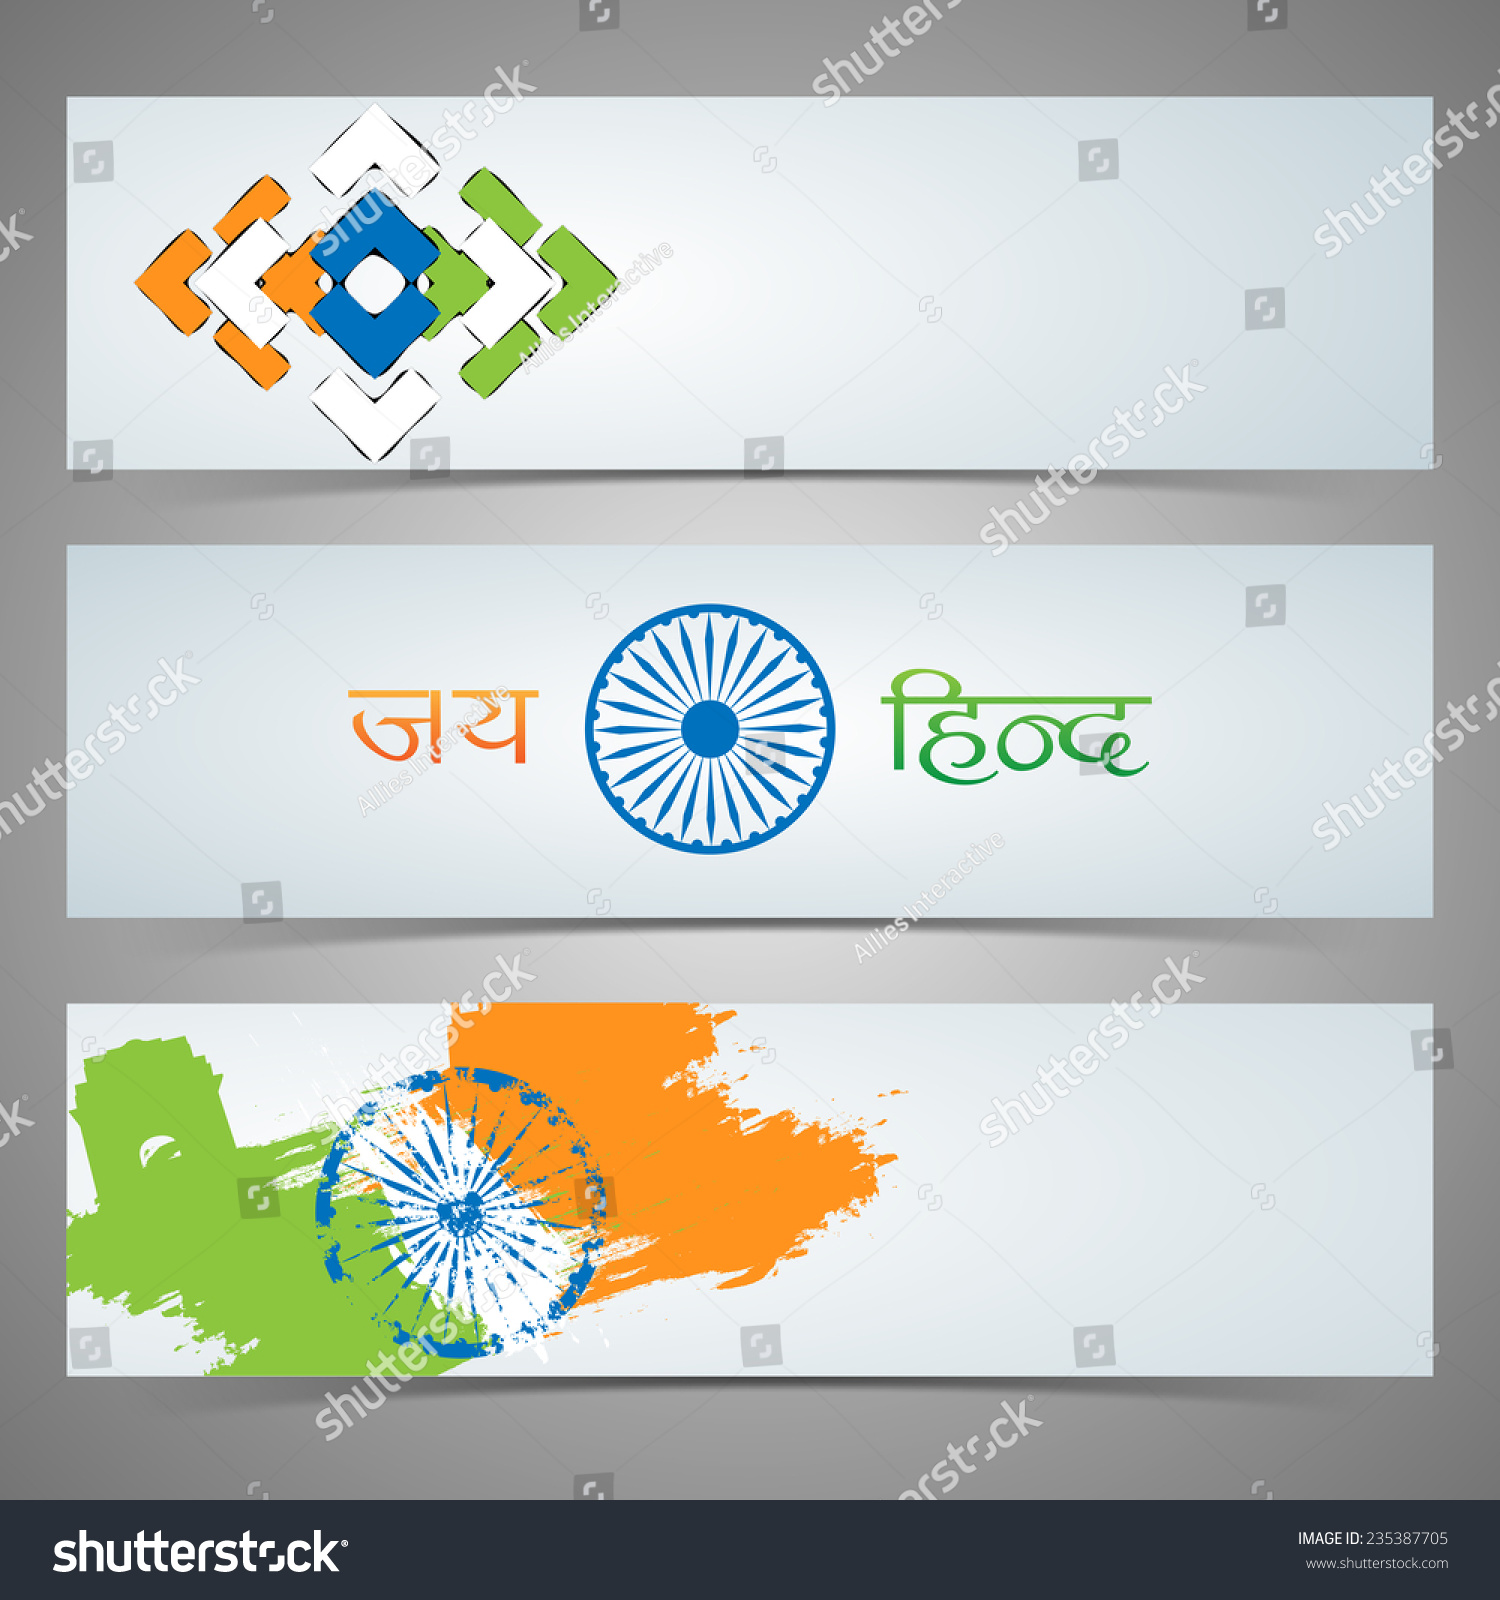 Colors website ashoka - Set Of Website Header Or Banner With Ashoka Wheel And Hindi Text Jai Hind Victor